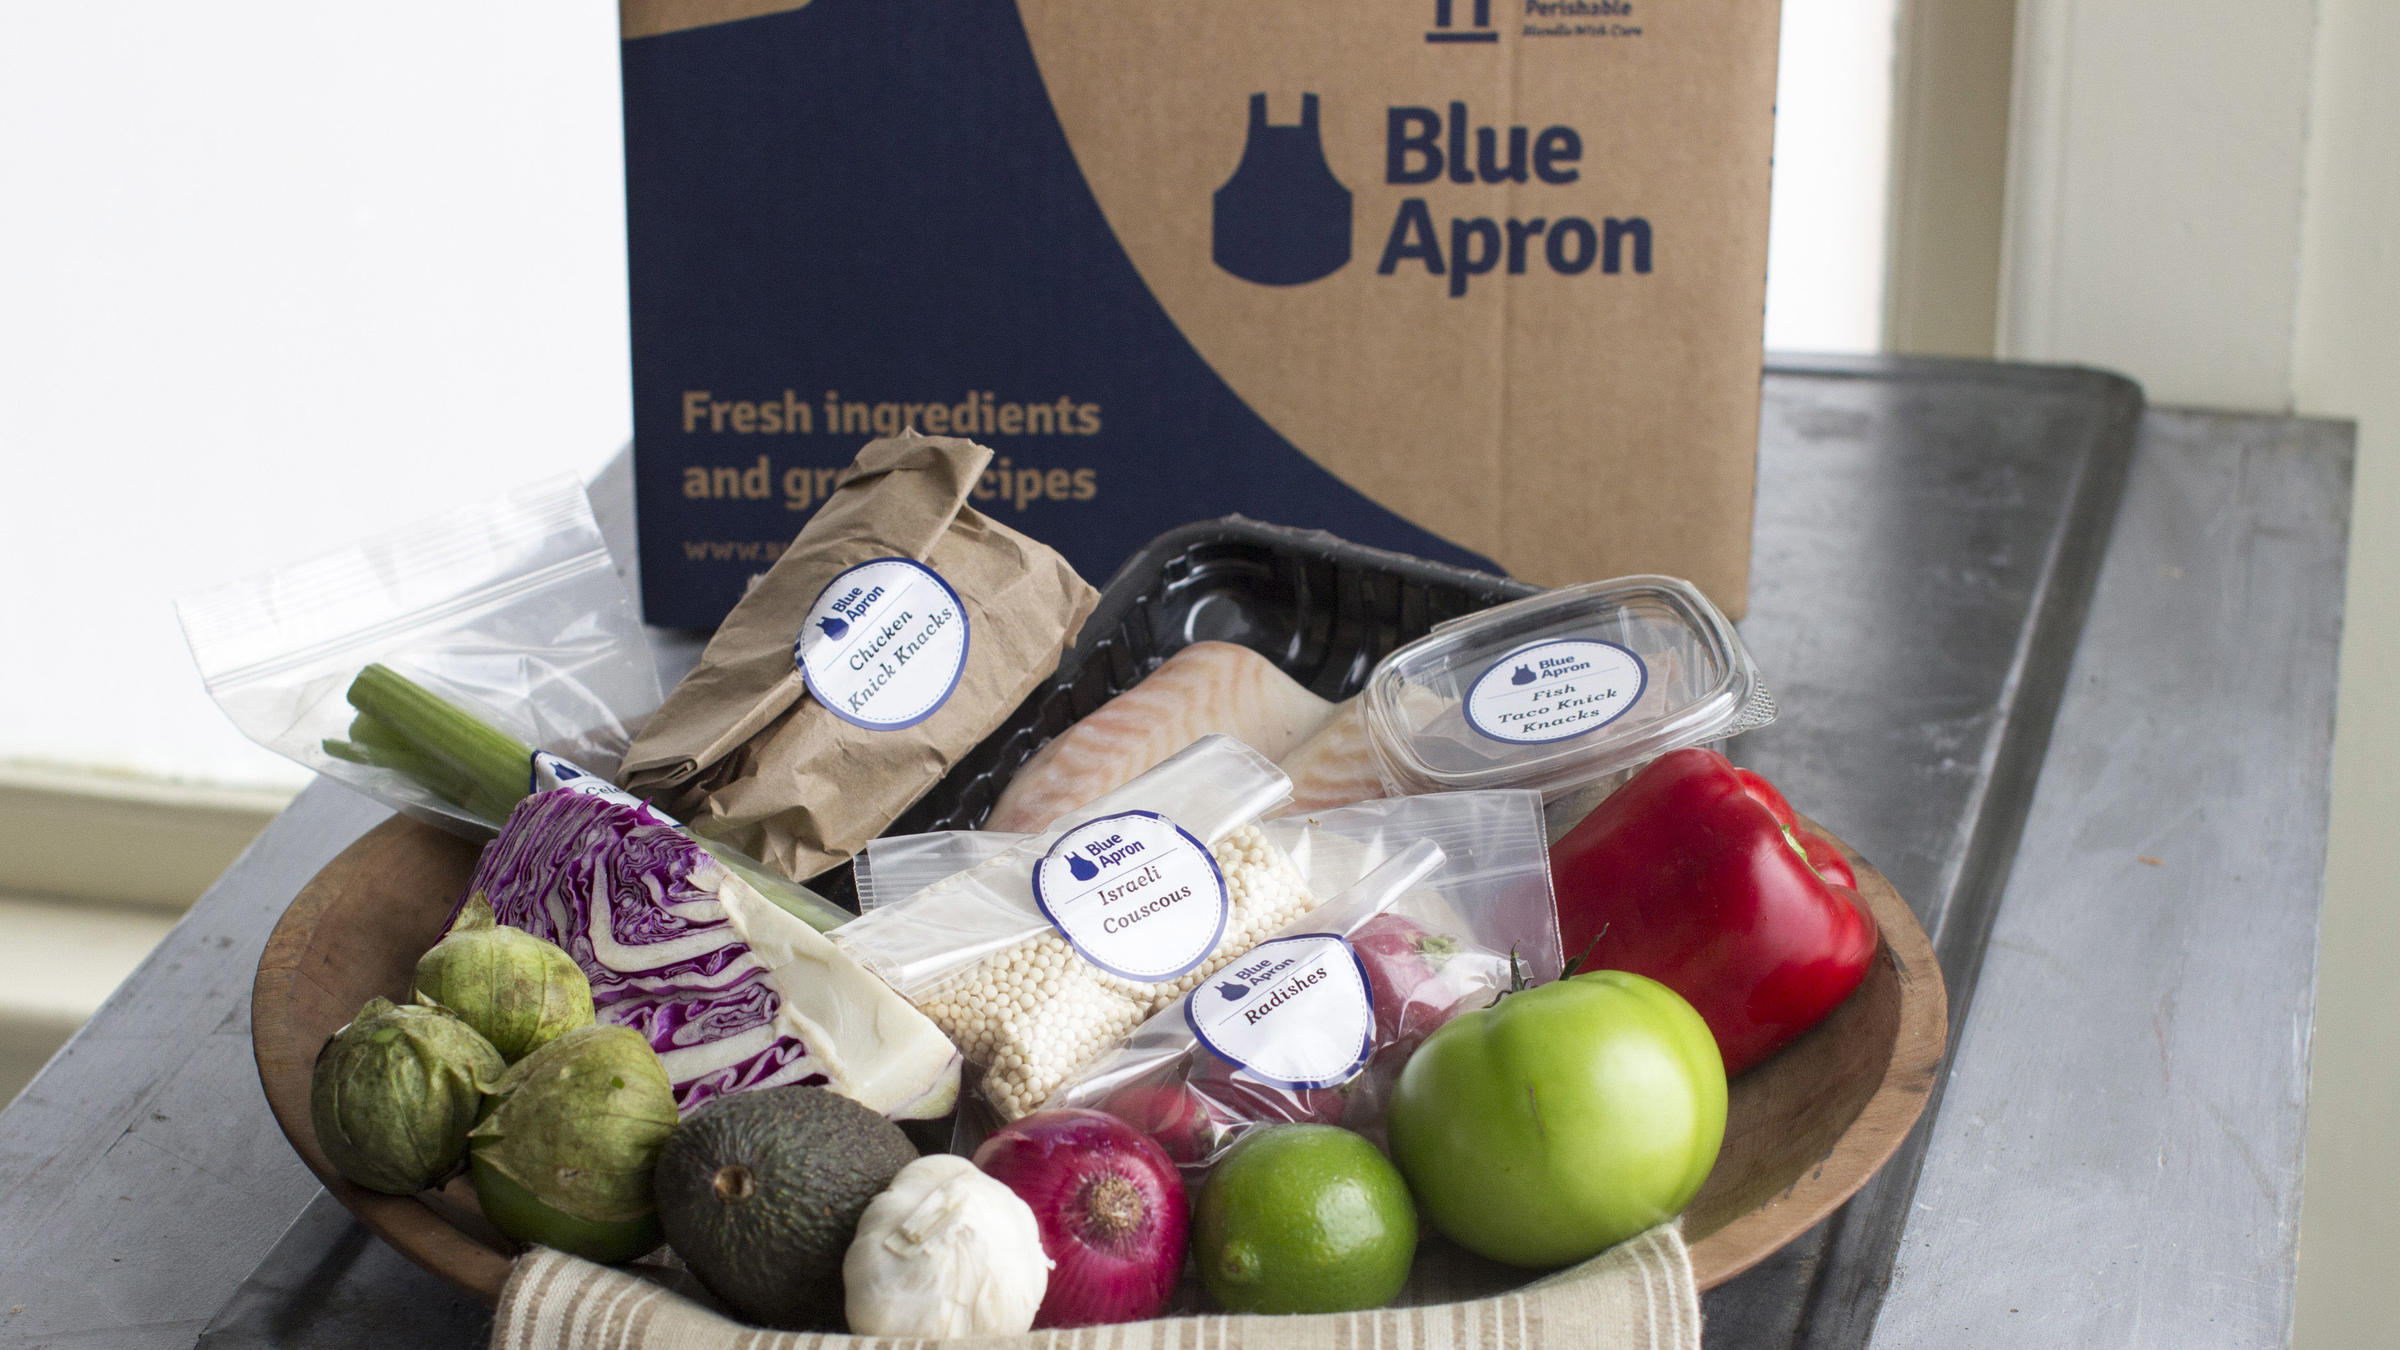 Blue apron seattle - A Home Delivered Meal Kit From Blue Apron